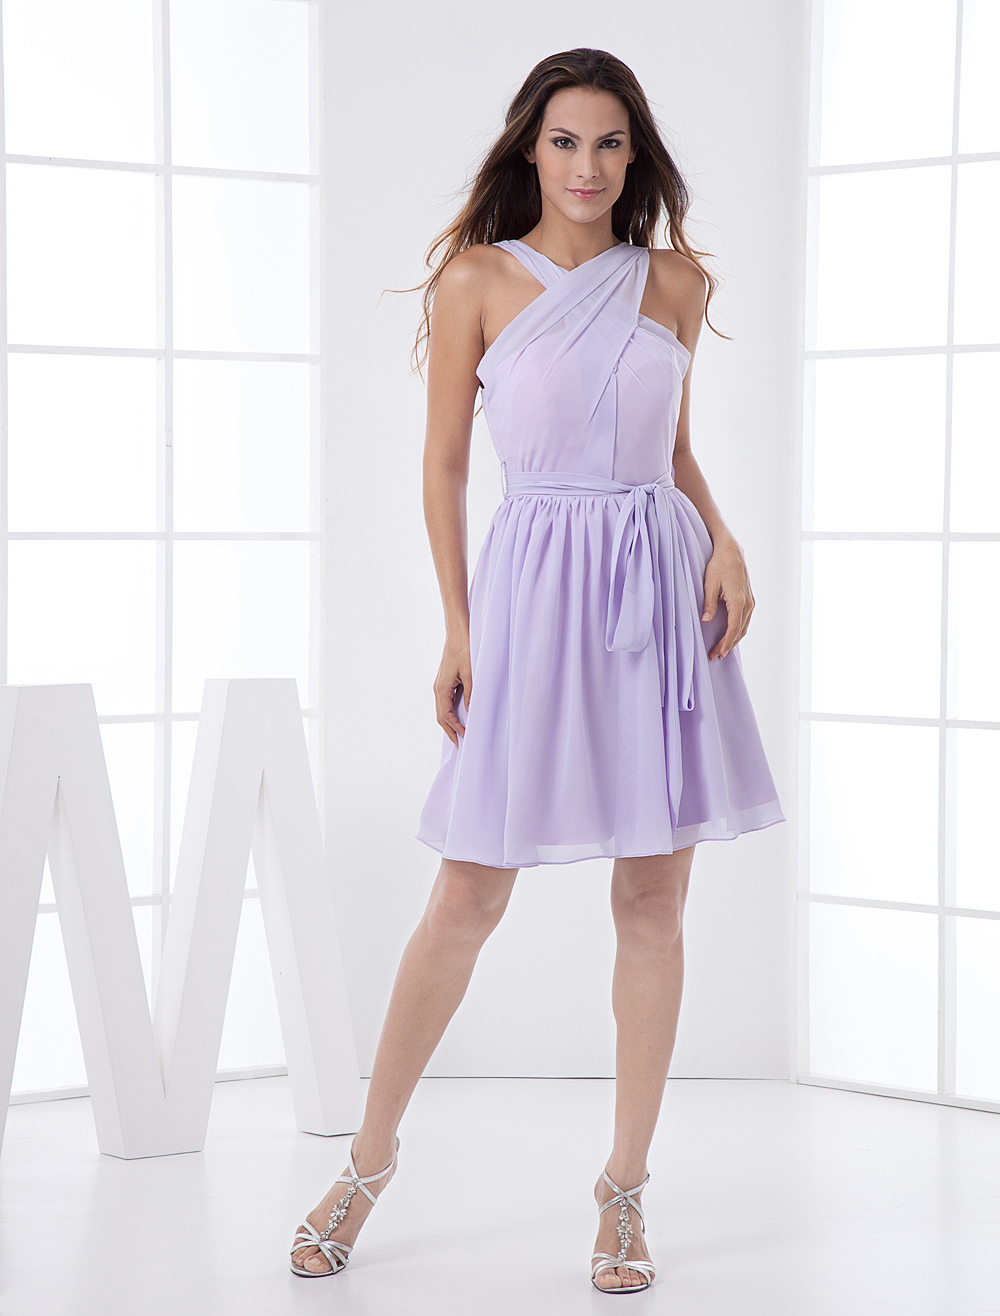 Chiffon bridesmaid dress lilac cross front a line short prom dress 30off ombrellifo Choice Image